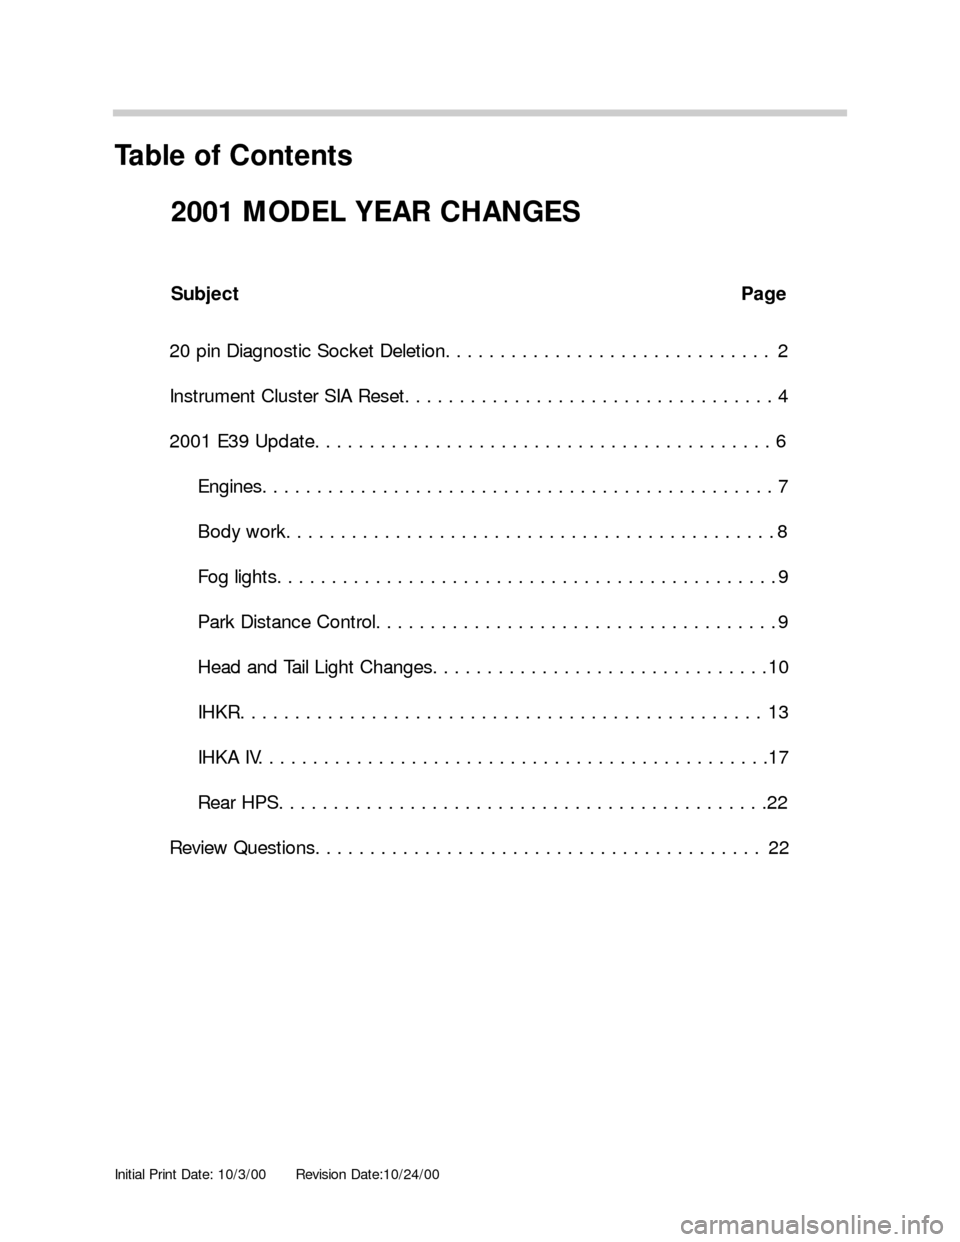 BMW 3 SERIES 2003 E46 Model Yar Changes, Page 1